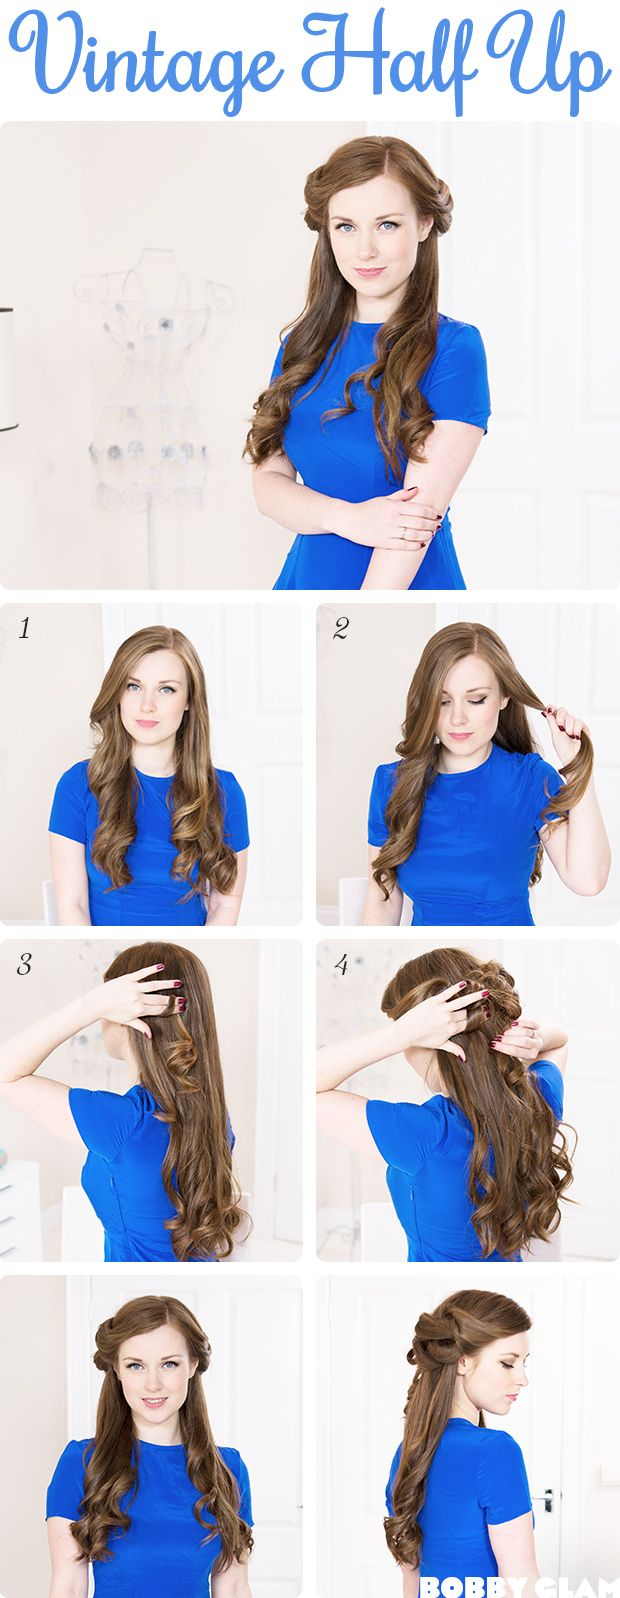 249 best Hairstyles images on Pinterest | Hairstyle ideas, Bridal ...